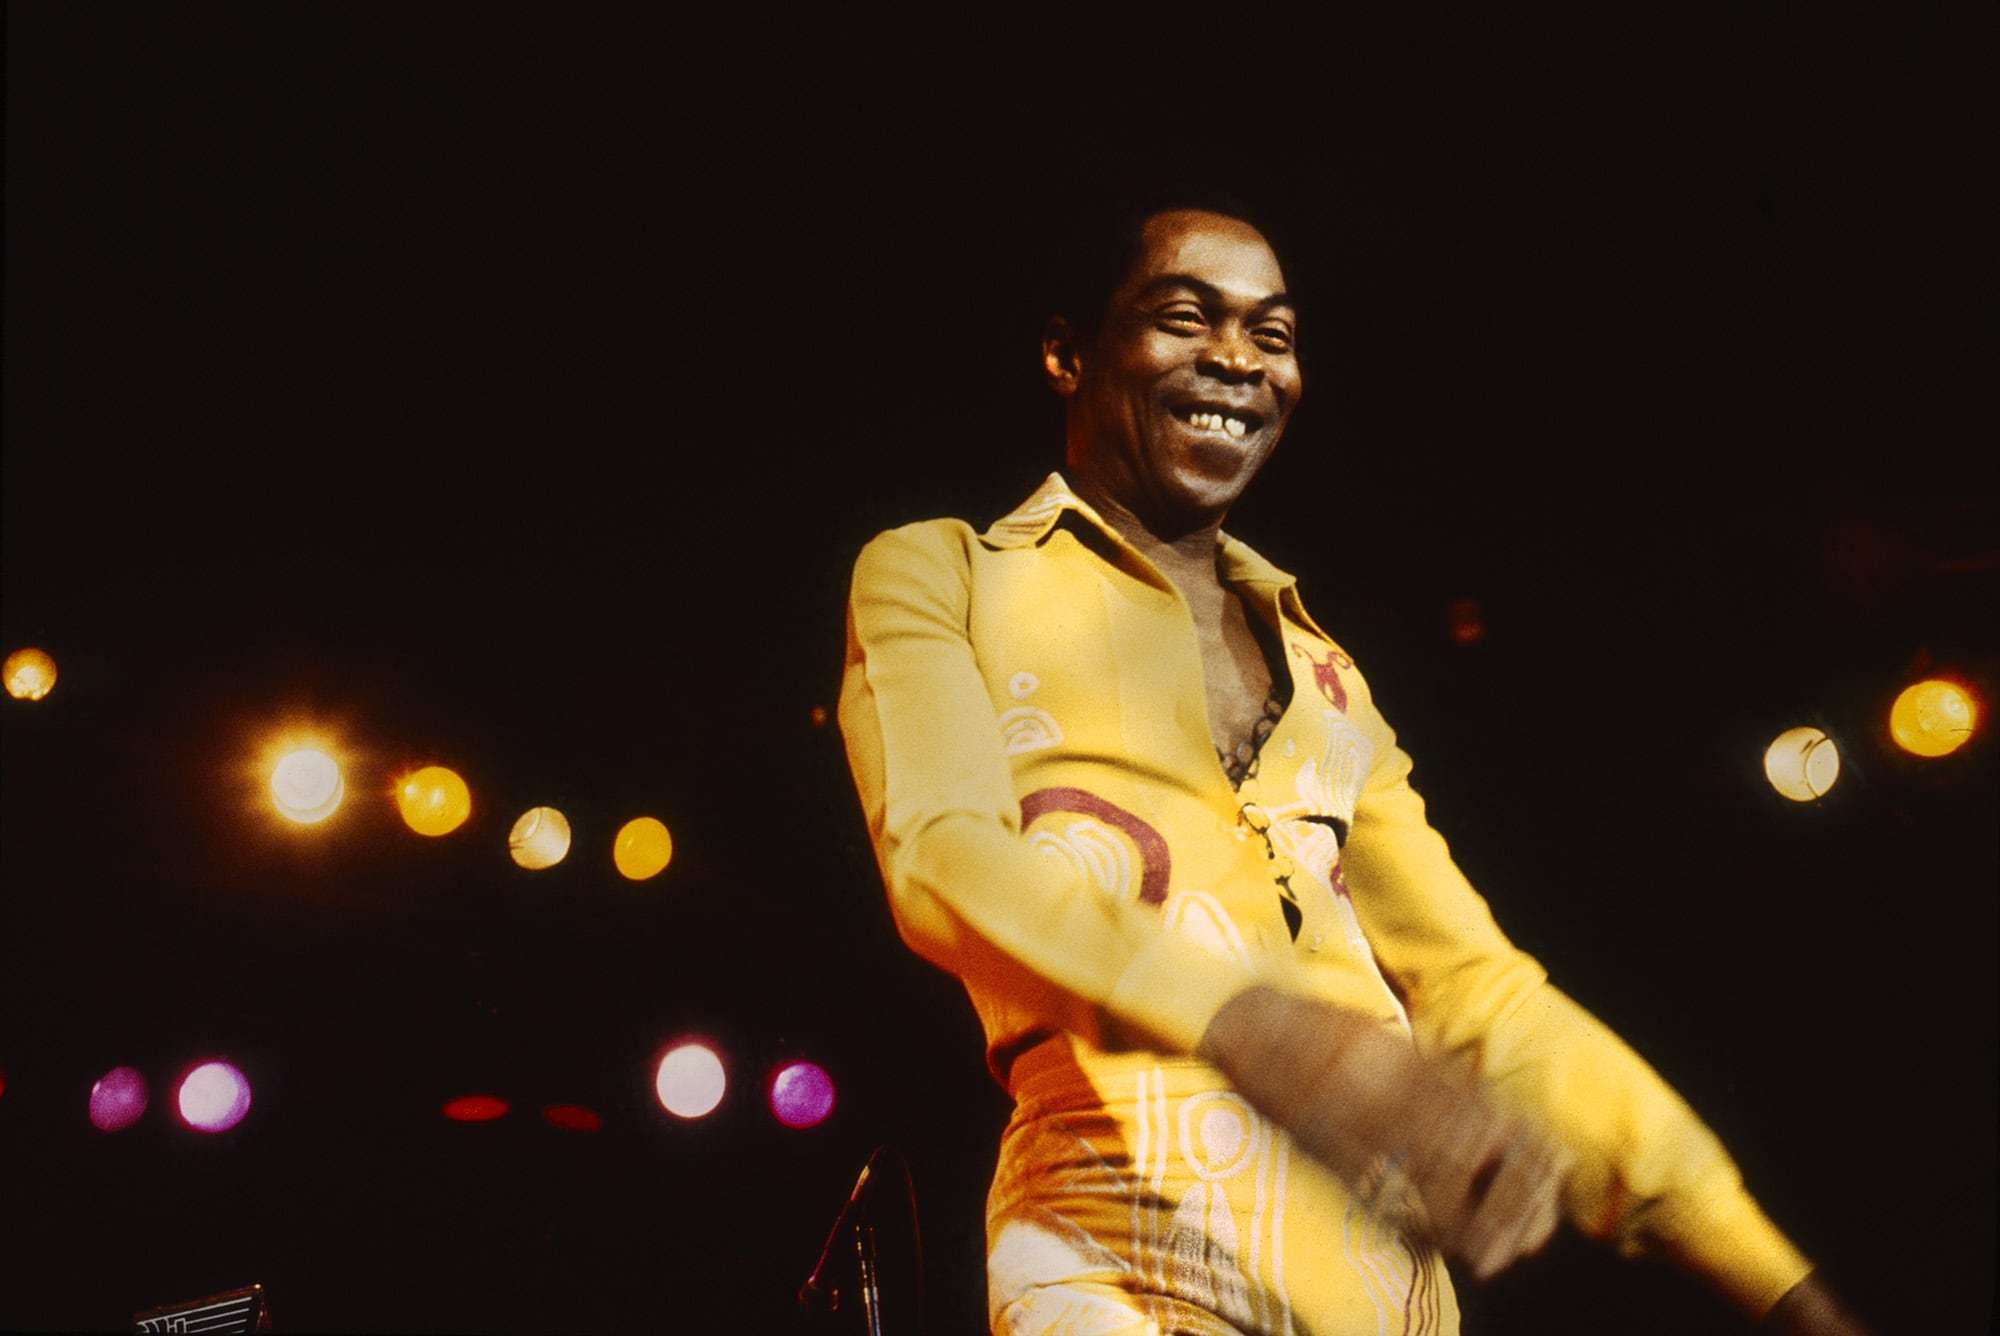 Fela Kuti's Legacy Continues With The Re-Release Of His 80's Classic Album 'Music Of Many Colours' & Official Website